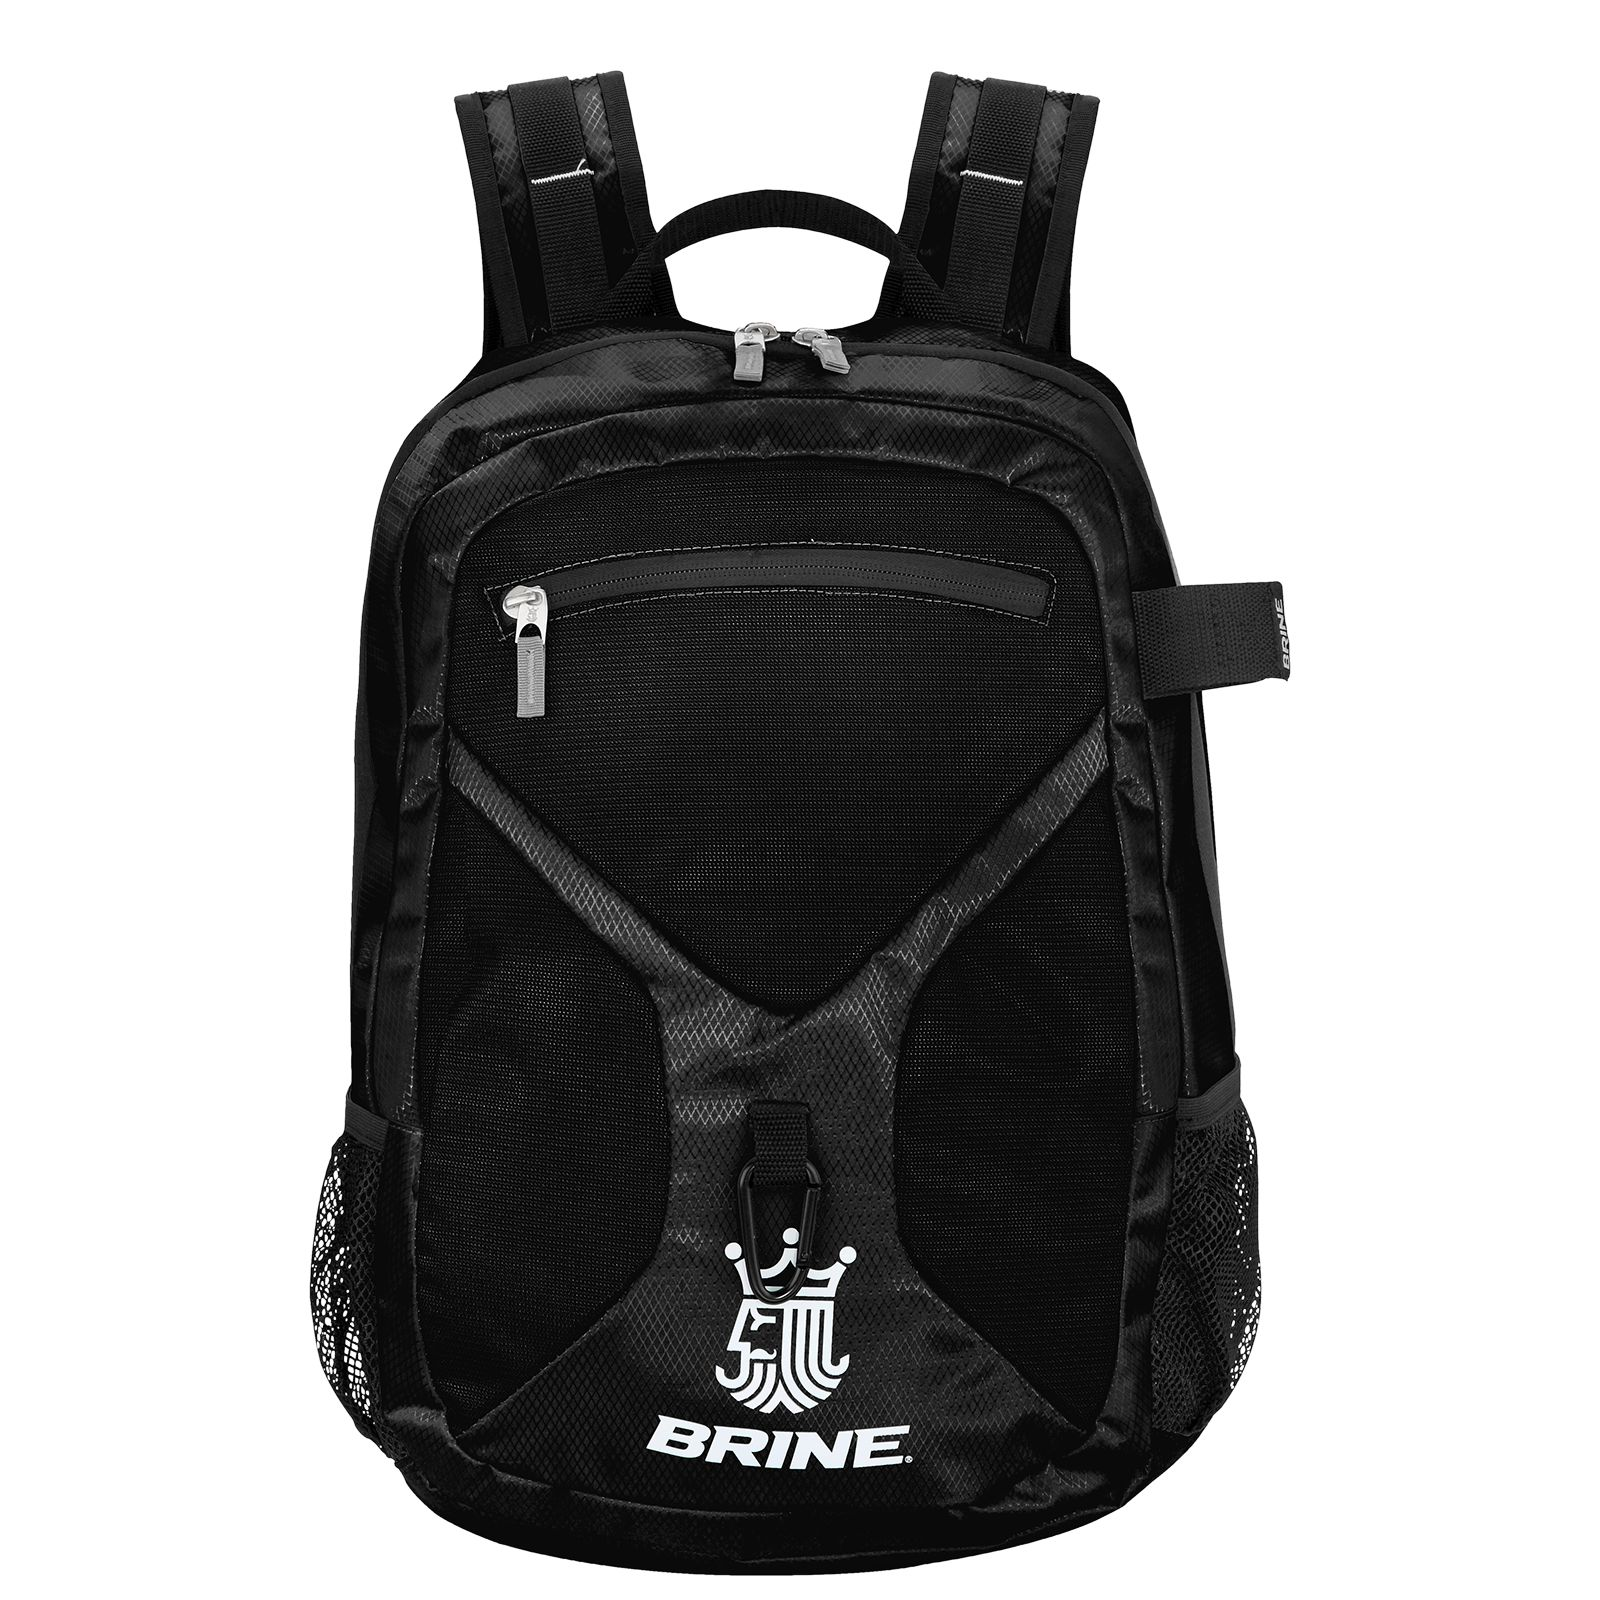 Brine custom brine blueprint backpack warrior us this product is currently unavailable malvernweather Gallery